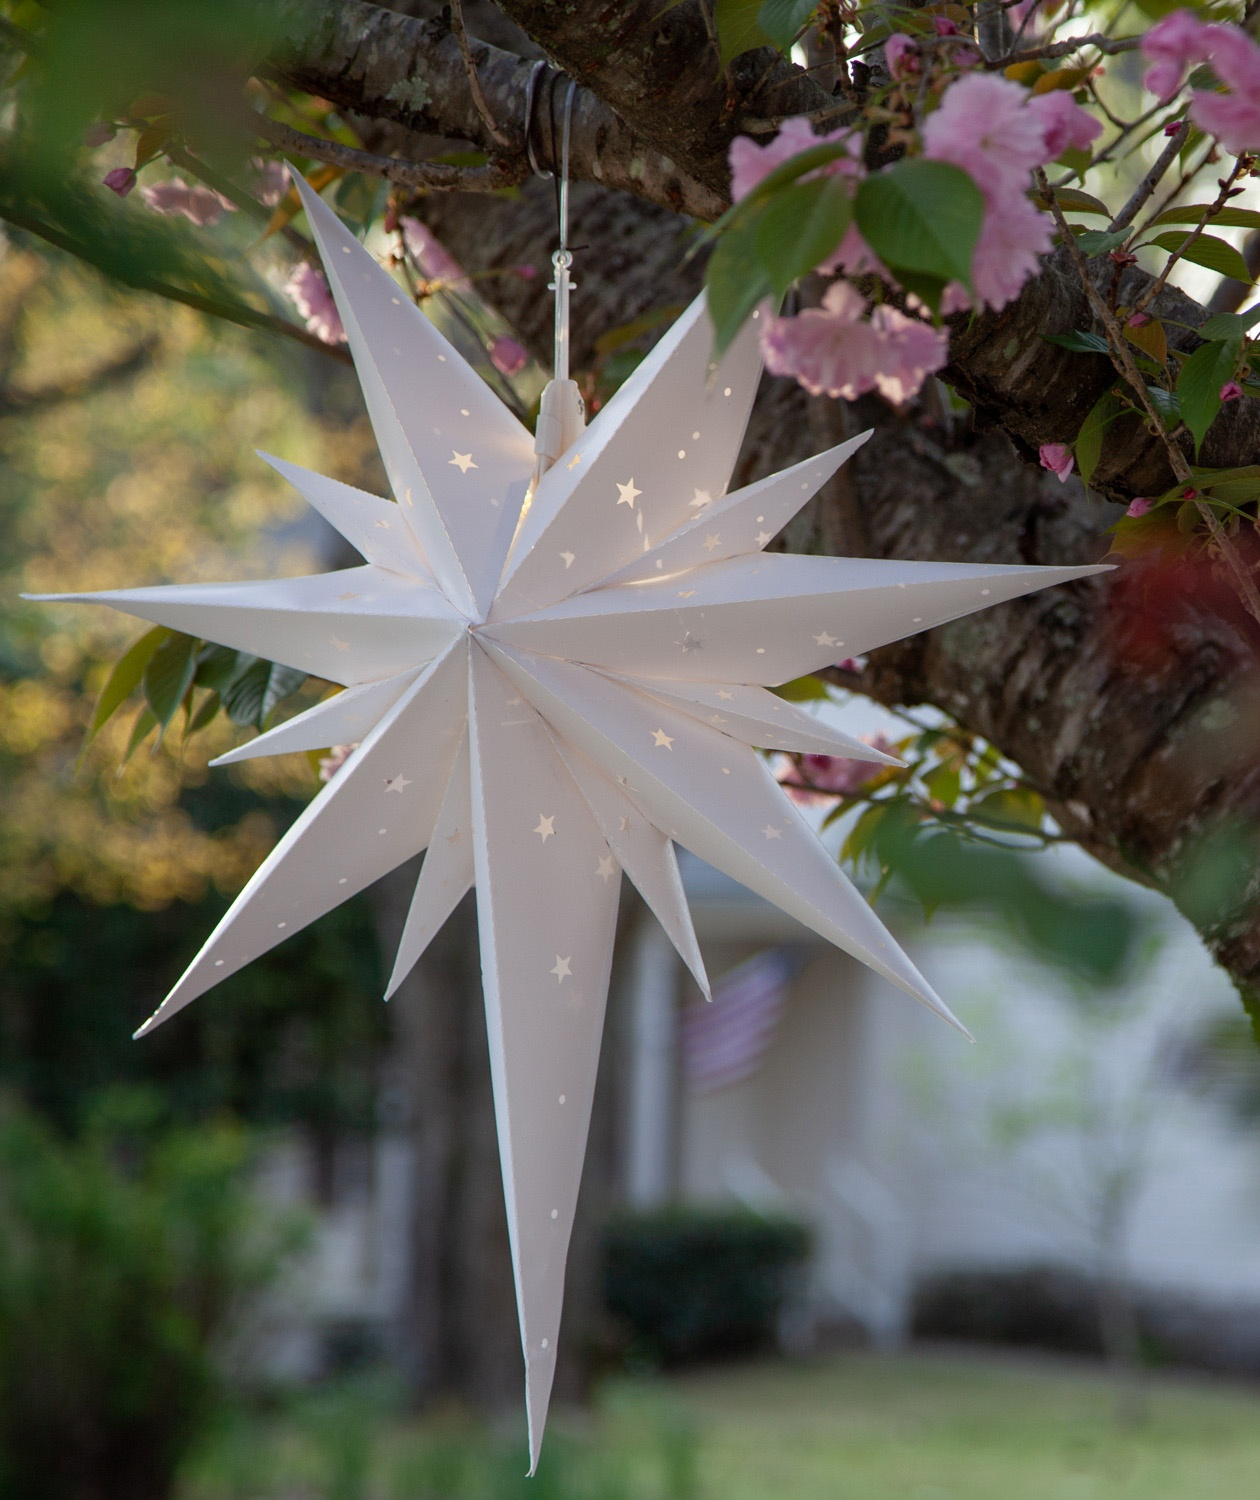 Bethlehem Christmas Star Light Decoration Hanging in a Tree